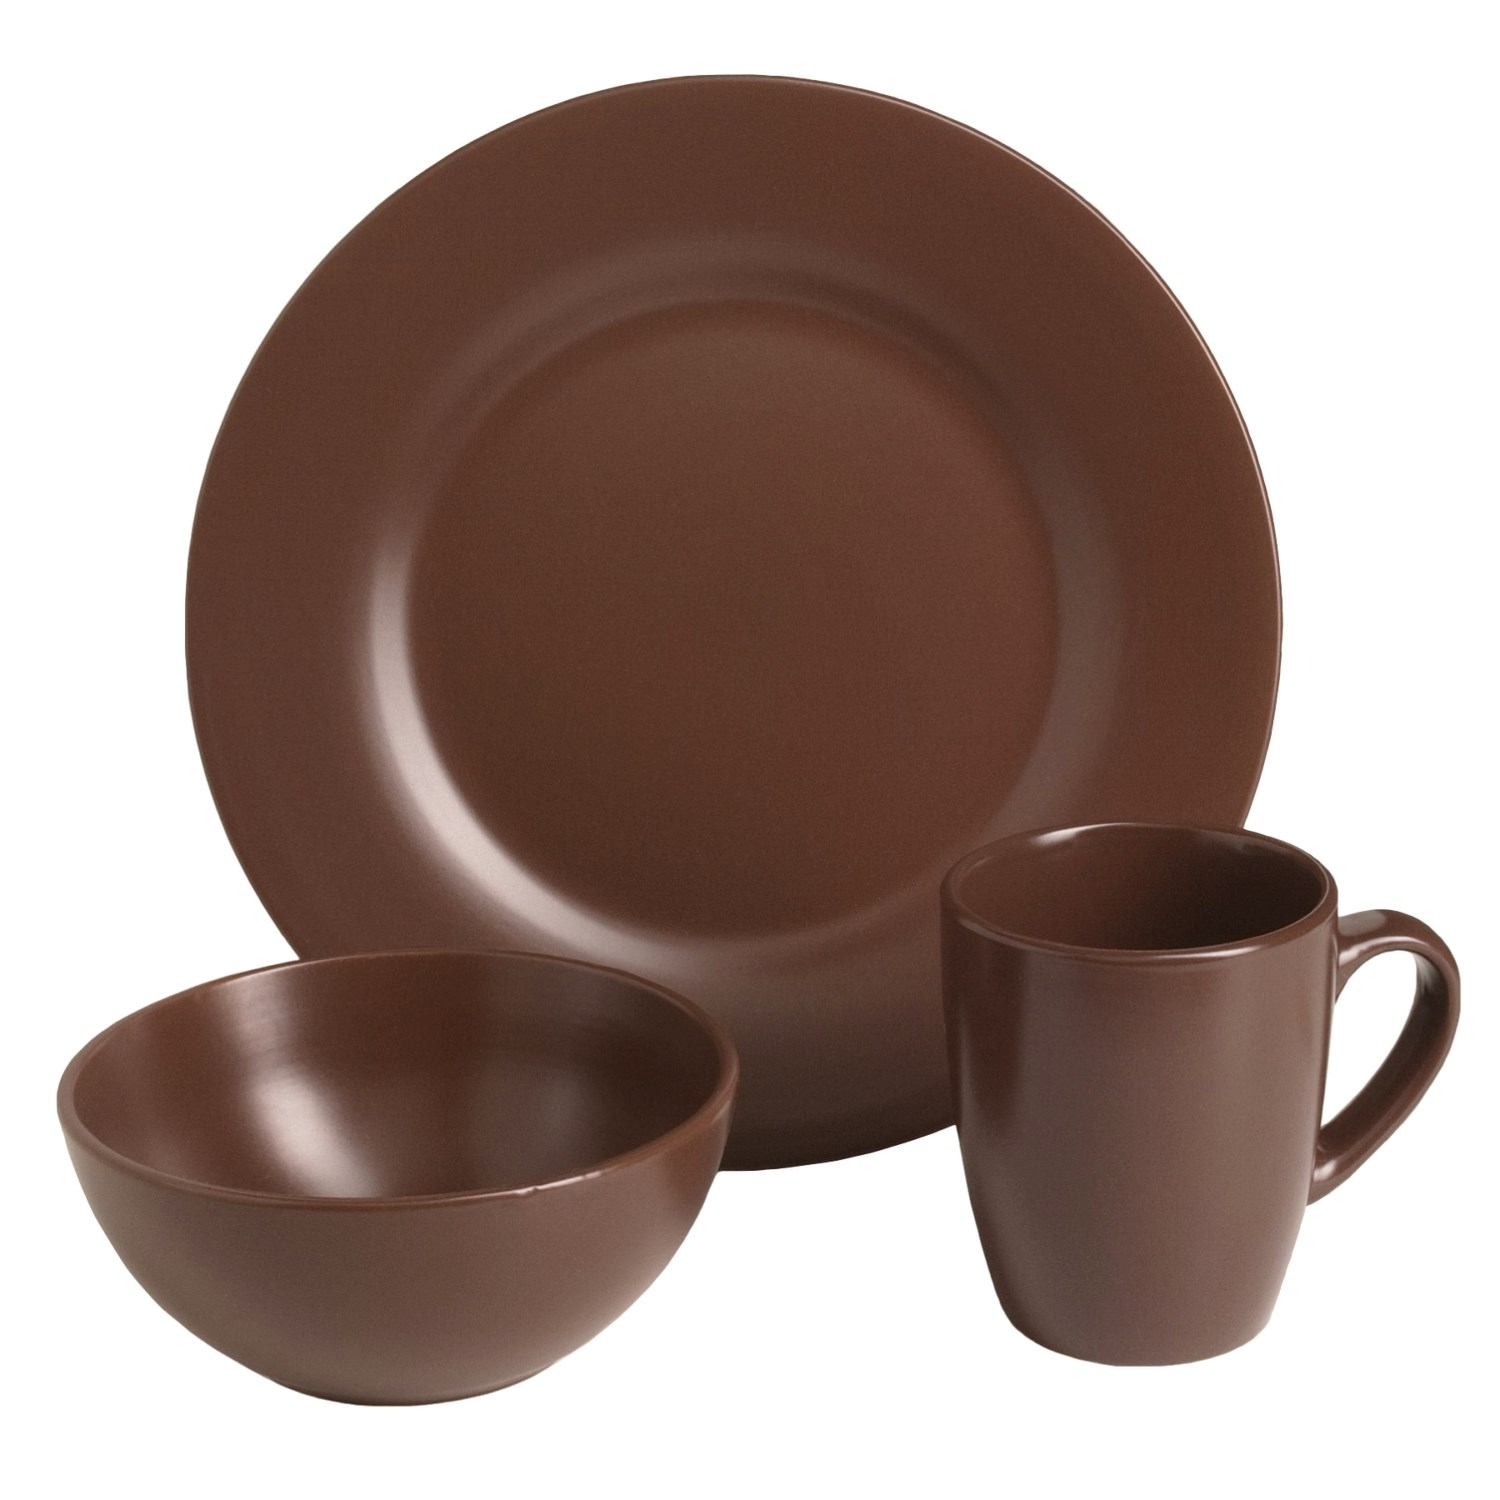 Brilliant stoneware dinnerware for kitchen and dining sets with stoneware dinnerware sets